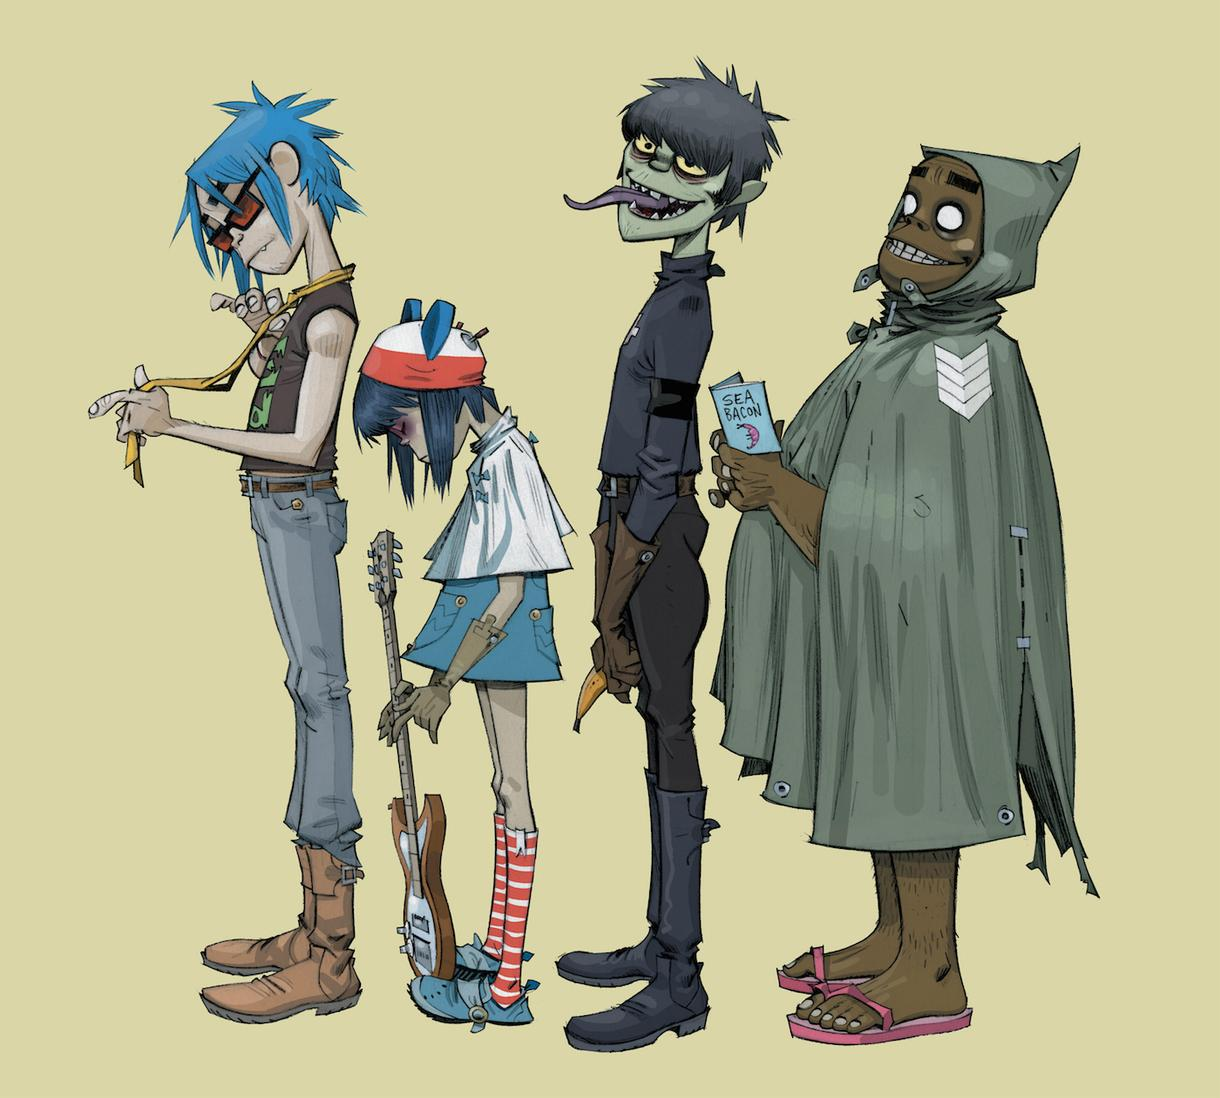 gorillaz-announce-that-theyre-working-on-new-material-for-next-year-body-image-1444675242